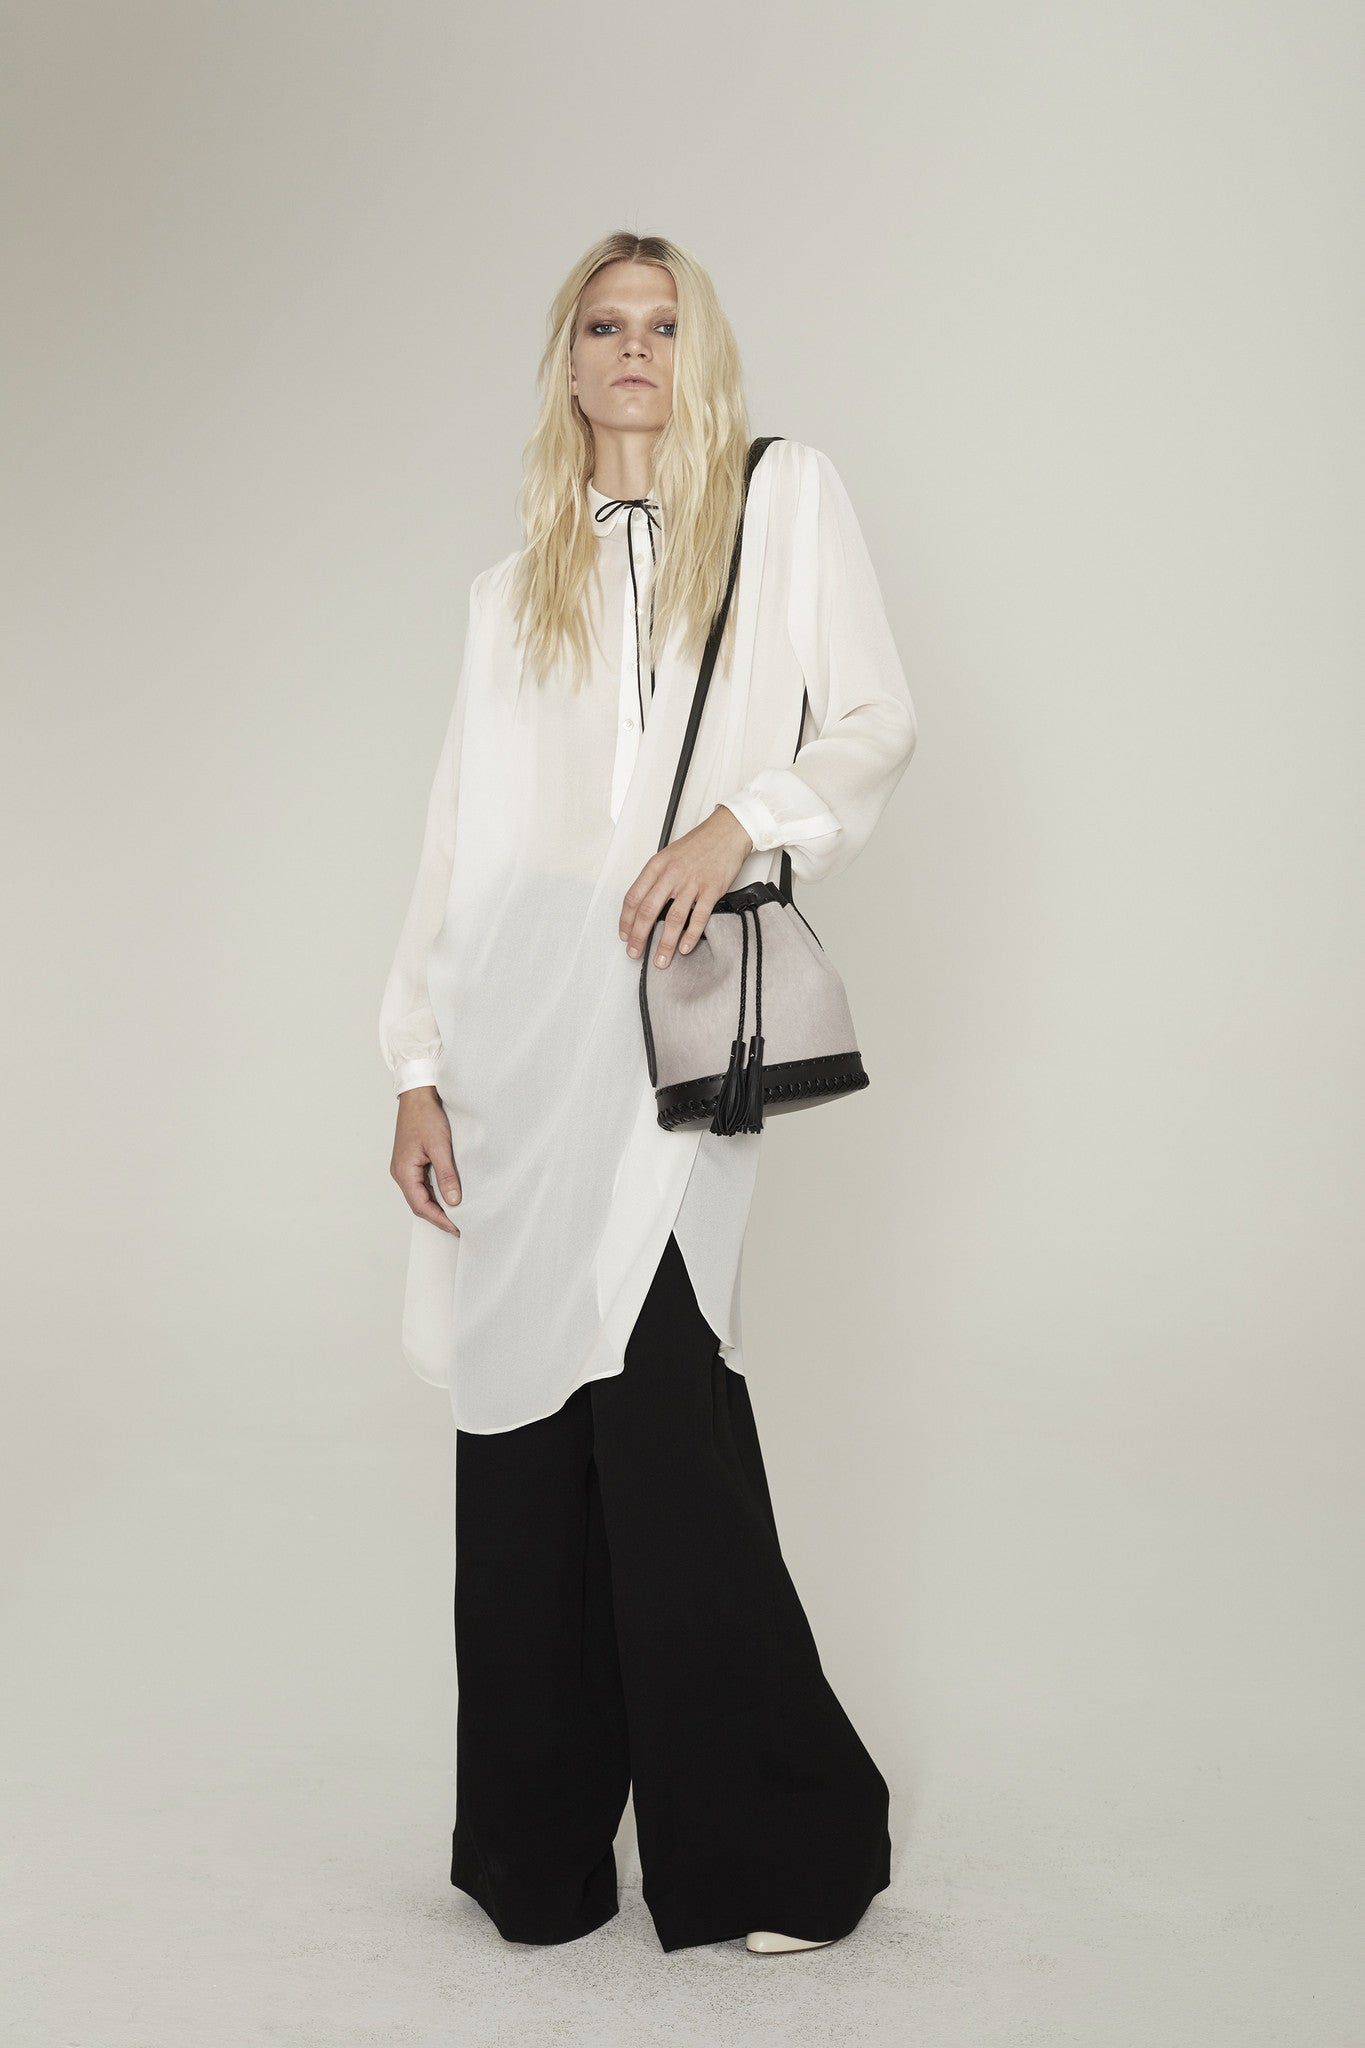 Chelsea Danielle Wichmann Model Silk Night Shirt & Relax Wide Leg Pants Wendy Nichol Clothing Fashion Designer handmade in NYC runway ready to wear show SS15 Space Master Oversized Sheer Transparent White Silk Blouse button collar long Sleeve Silk Wide leg High waist waisted pants Made to Measure Made to Order Custom Tailoring Bespoke